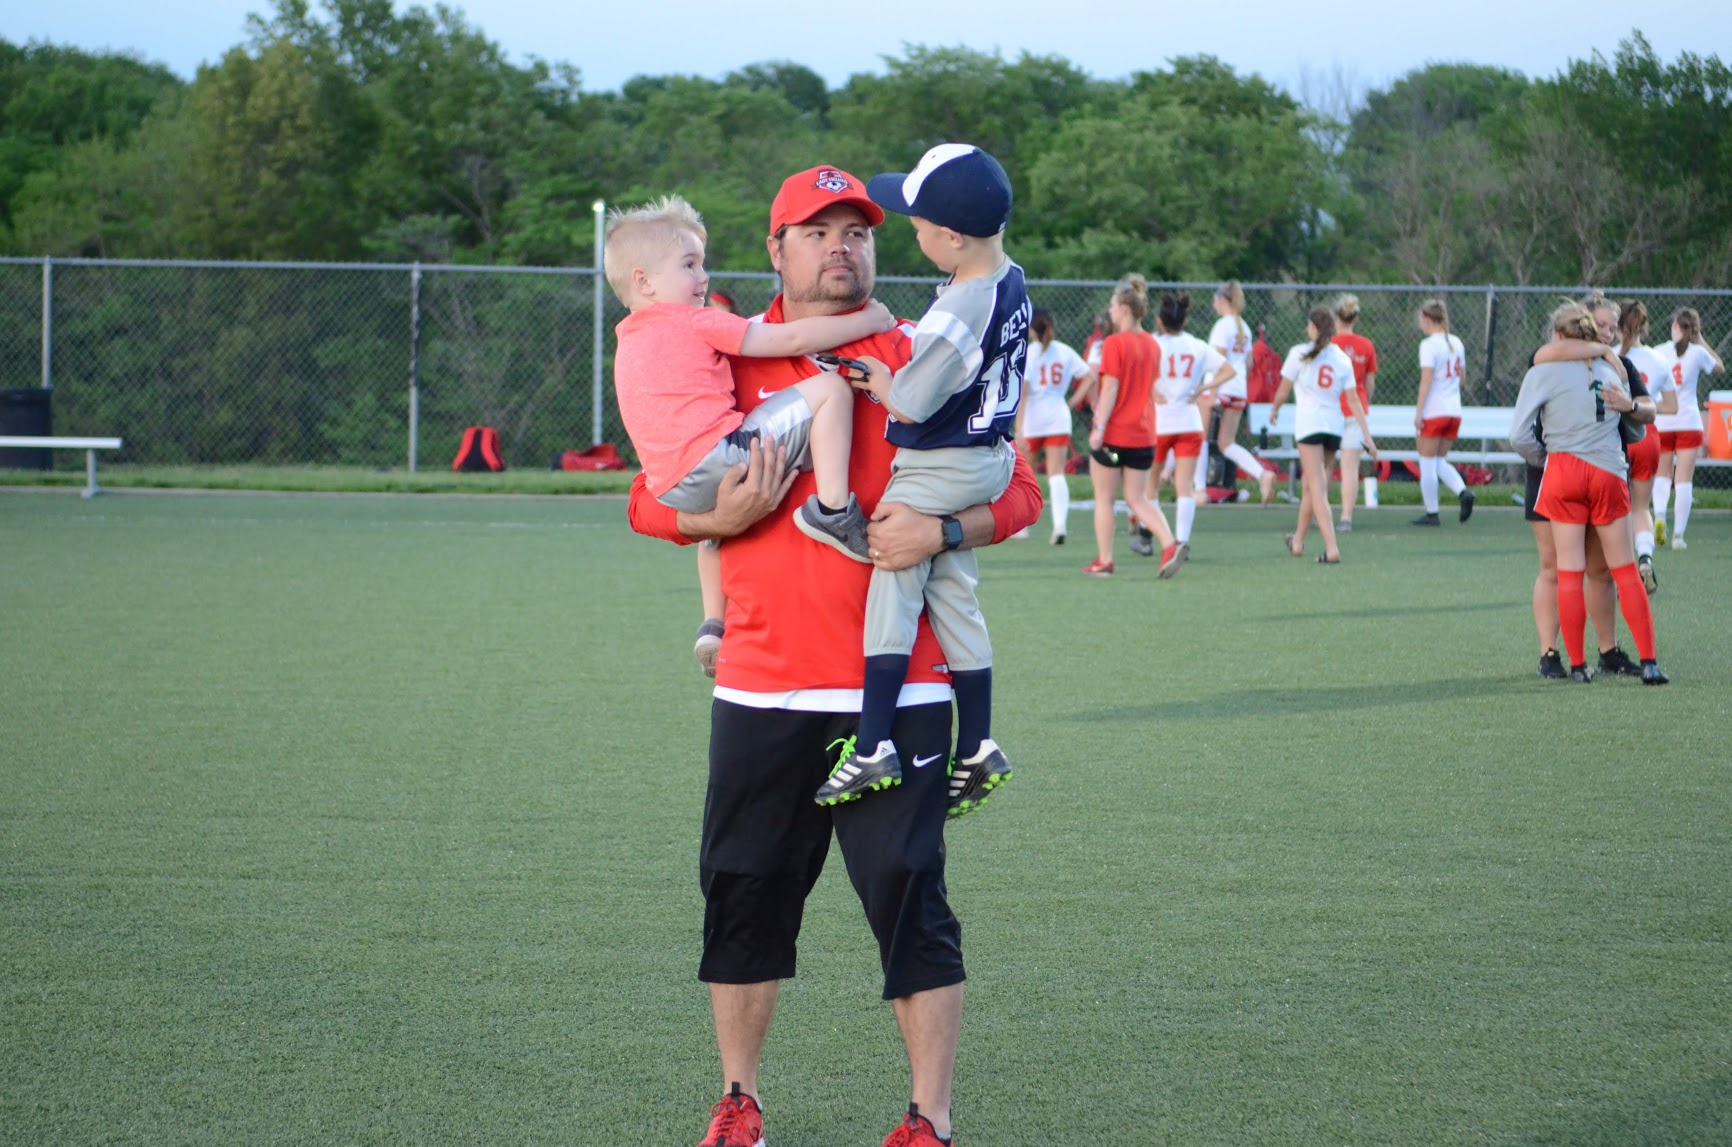 LEN LEHMANN/Special to the Citizen  Park Hill girls soccer coach Brandt Bell, center, holds his sons Holden, left, and Dash, right, at the conclusion of a game earlier this season. Bell resigned as the head coach of the girls program, where he led the team to the Class 4 title in 2018.